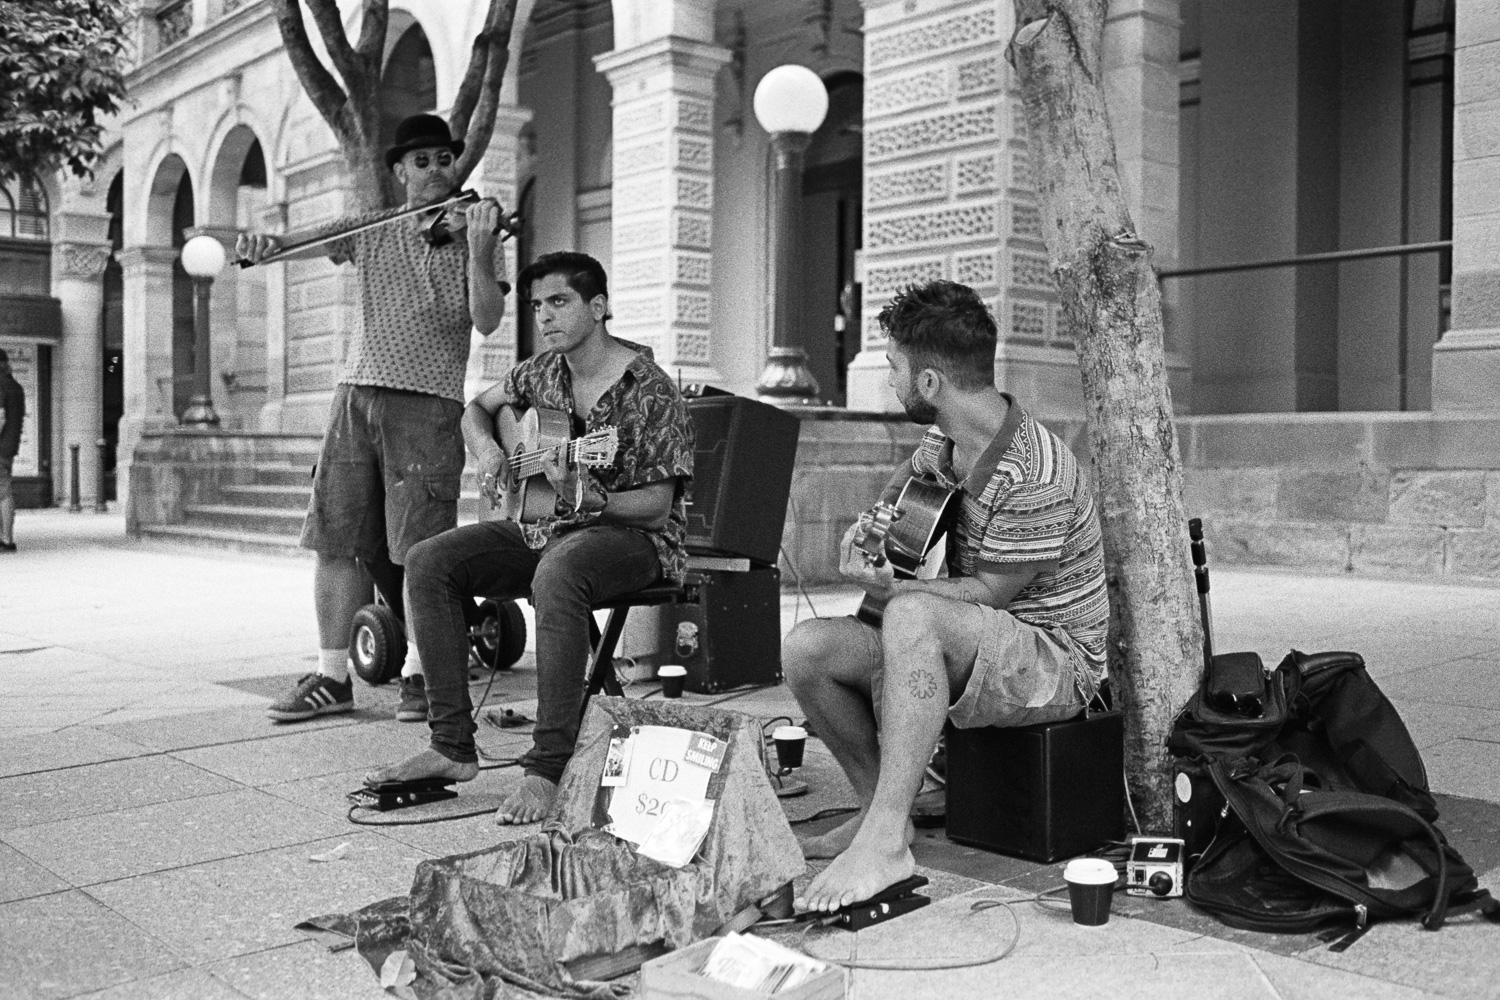 AA014-Nick-Bedford,-Photographer-Black and White, Brisbane, Buskers, Film, Film Scanning, Kodak Tri-X 400, Nikkor 35mm F2 AI-s, Nikon FA, Pakon F135+, Rodinal, Street Photography, Summer.jpg